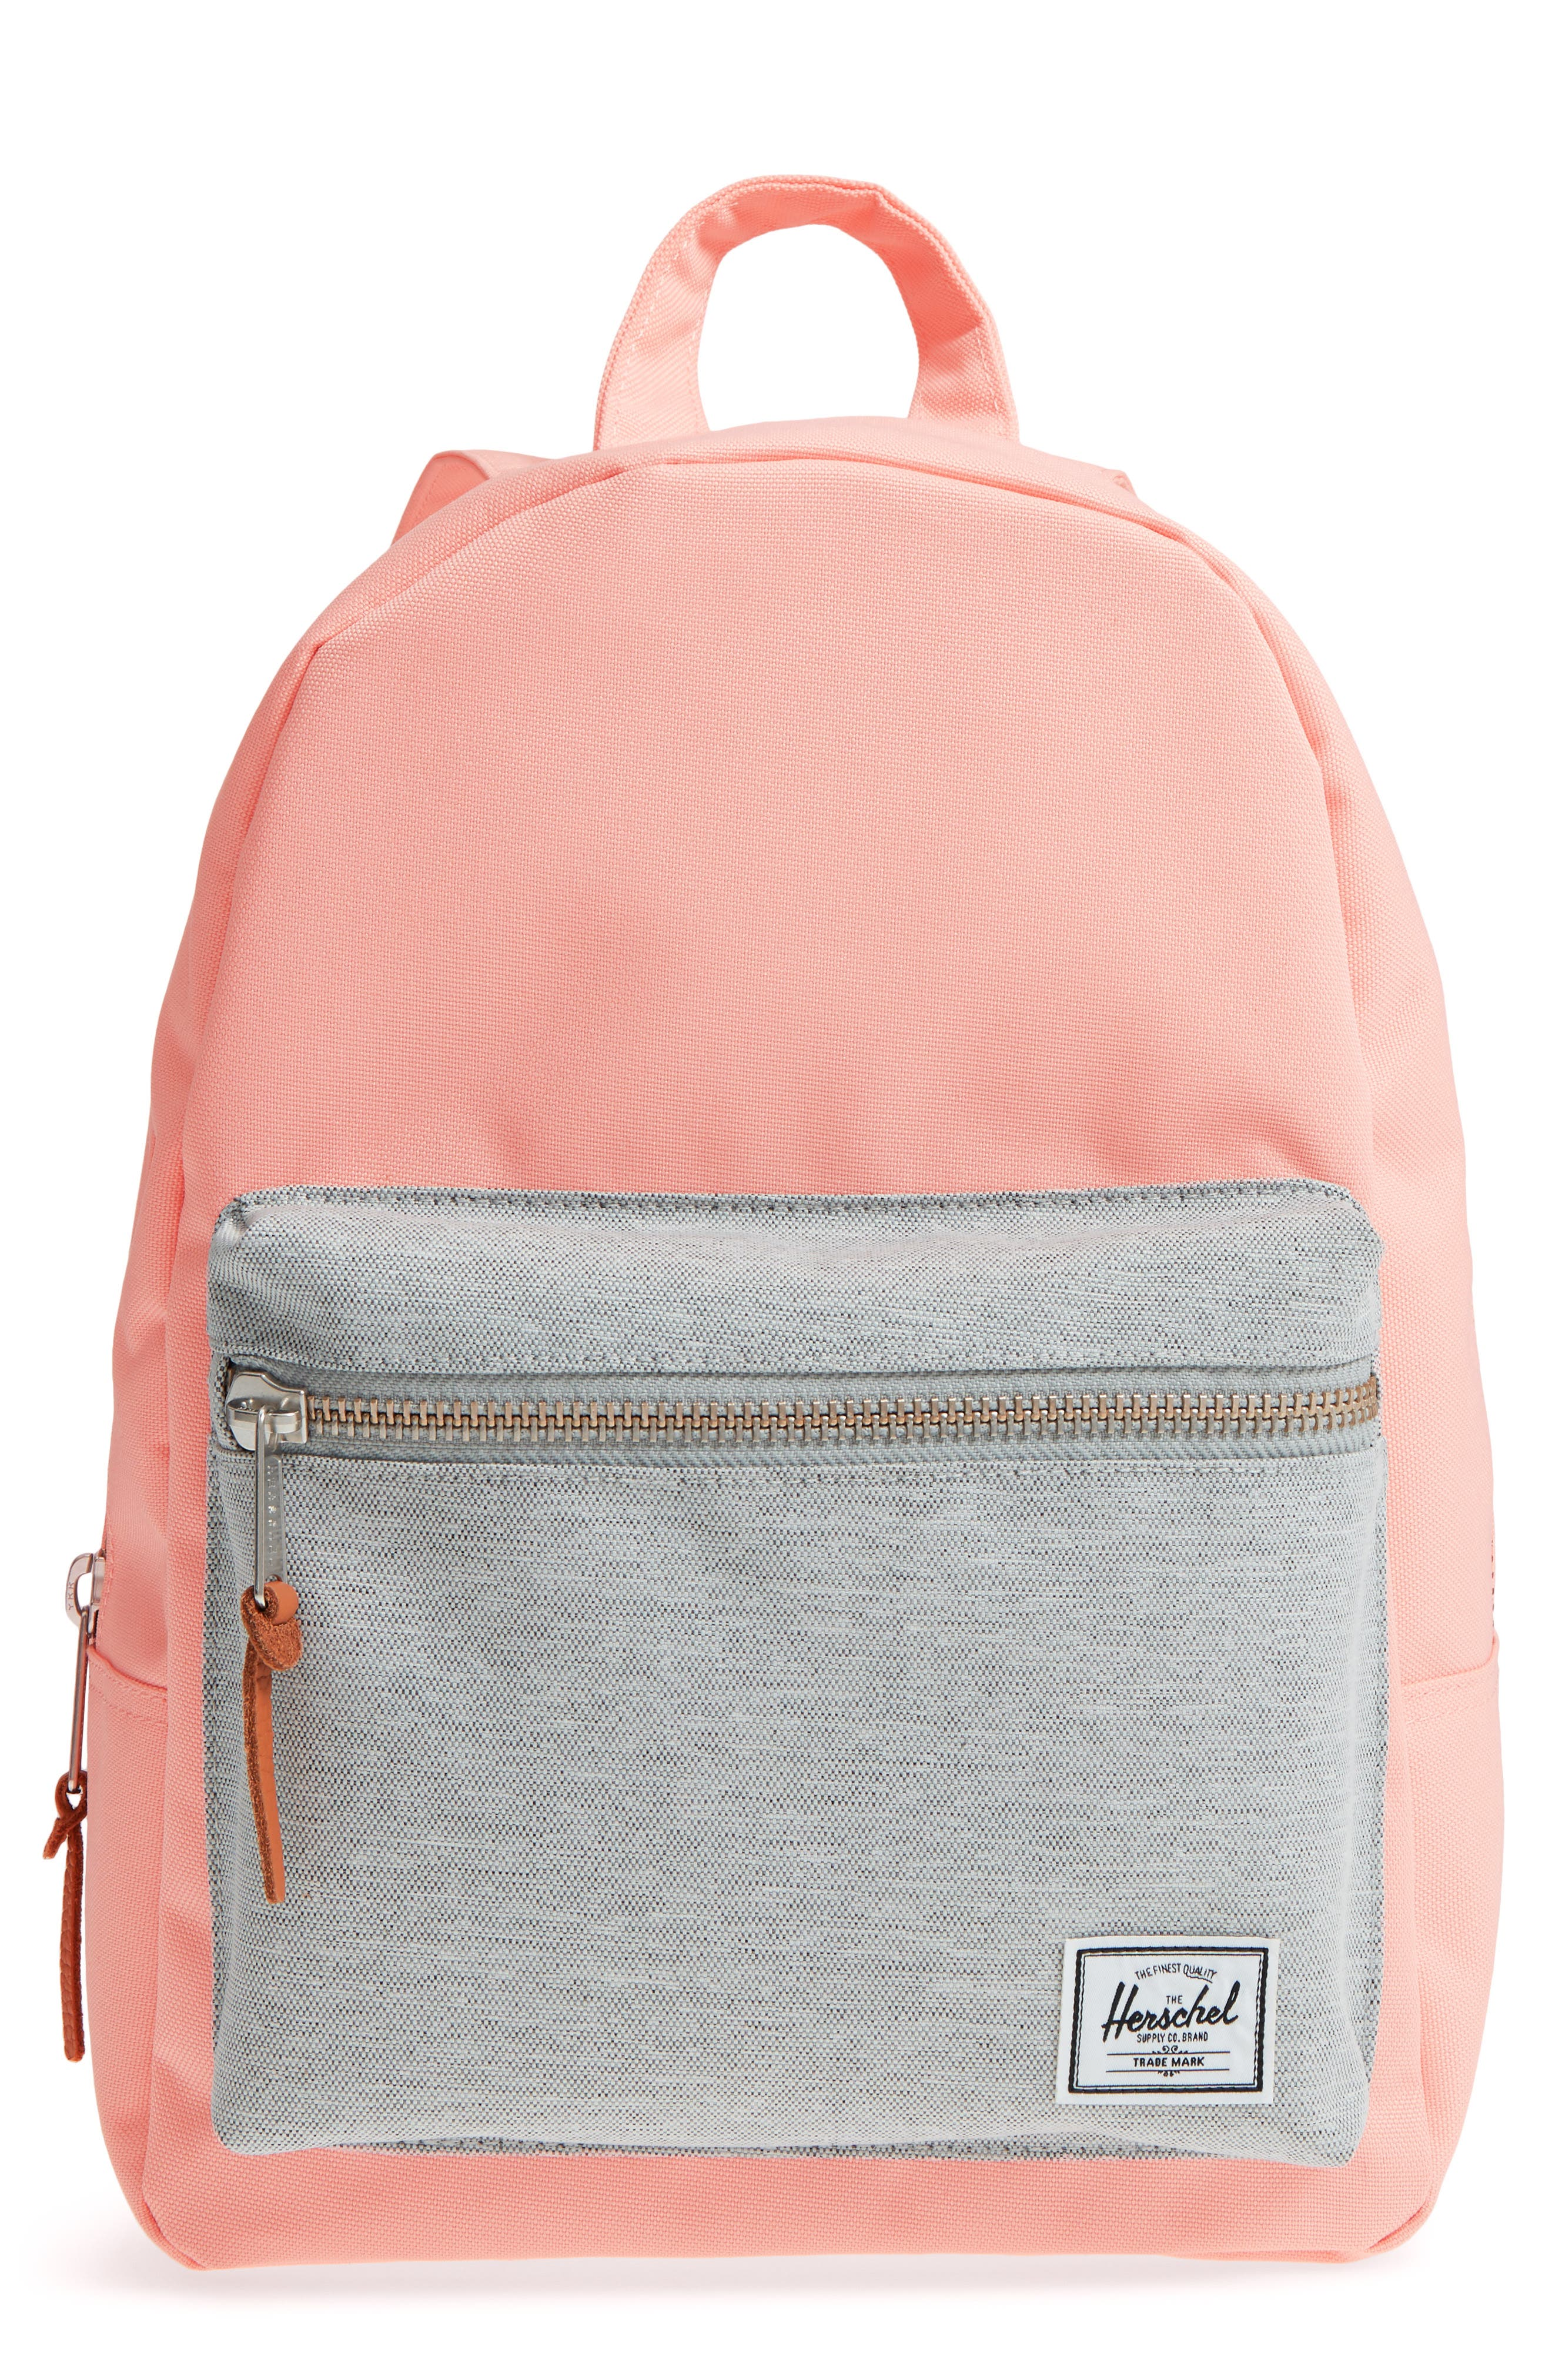 X-Small Grove Canvas Backpack,                             Main thumbnail 1, color,                             Peach/ Light Grey